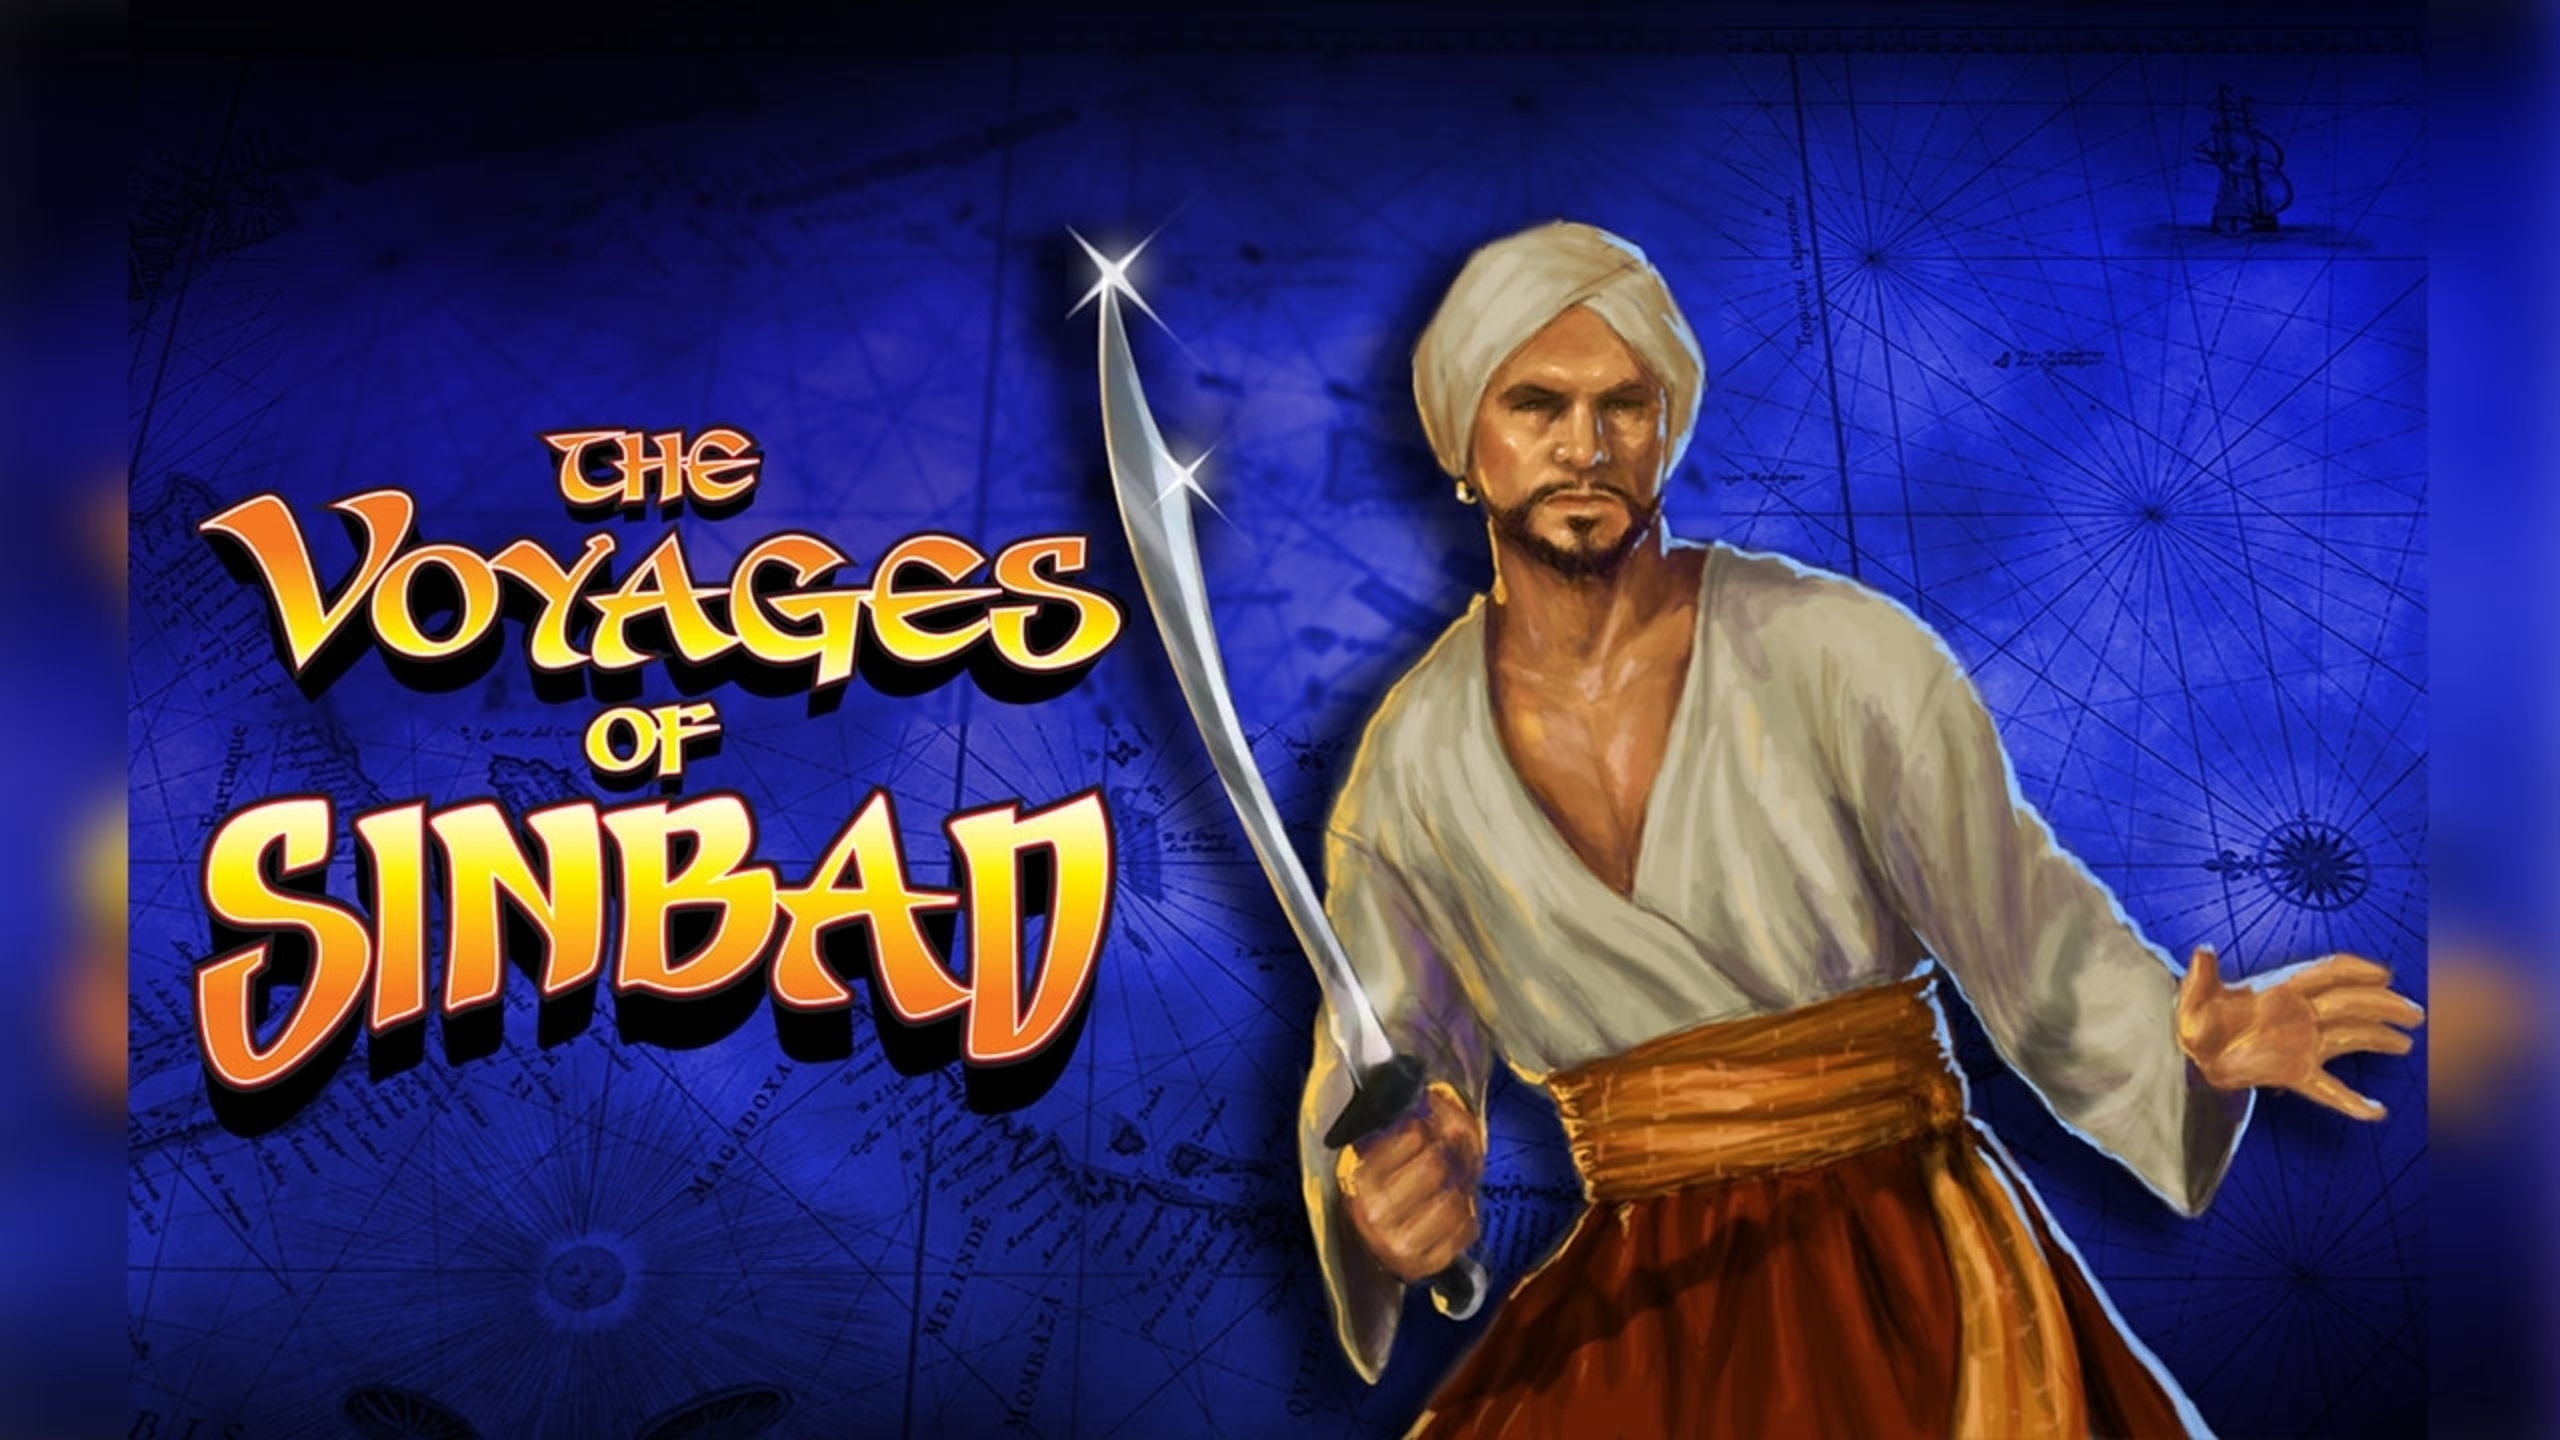 The The voyages of Sinbad Online Slot Demo Game by 2 By 2 Gaming